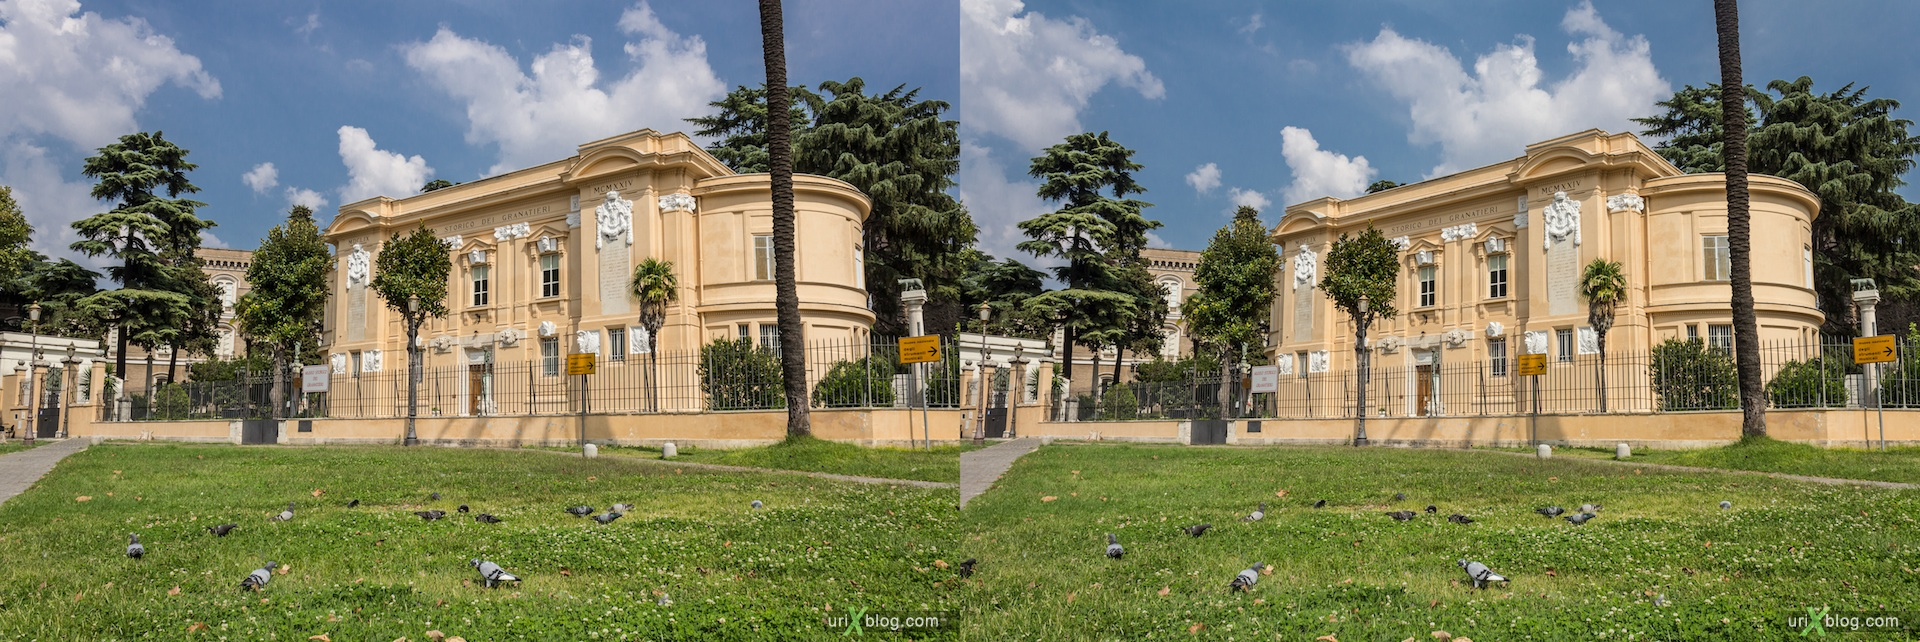 2012, lawn, grass, pigeons, Santa Croce in Gerusalemme square, 3D, stereo pair, cross-eyed, crossview, cross view stereo pair